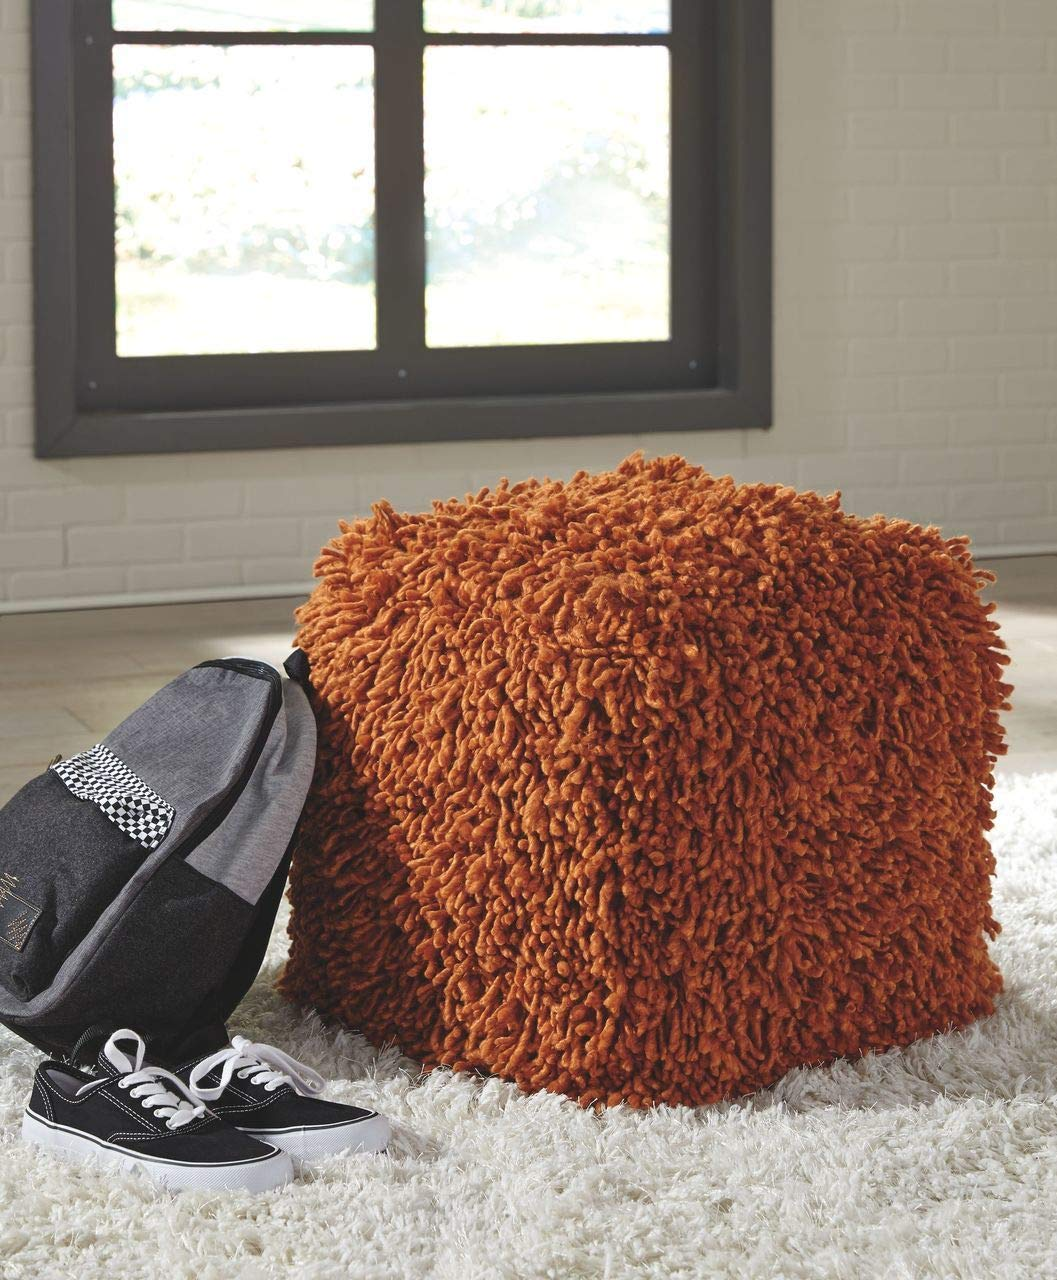 Ashley Furniture Signature Design - Amelia Pouf - Comfortable Ottoman & Footrest - Contemporary - Orange Wool A1000431